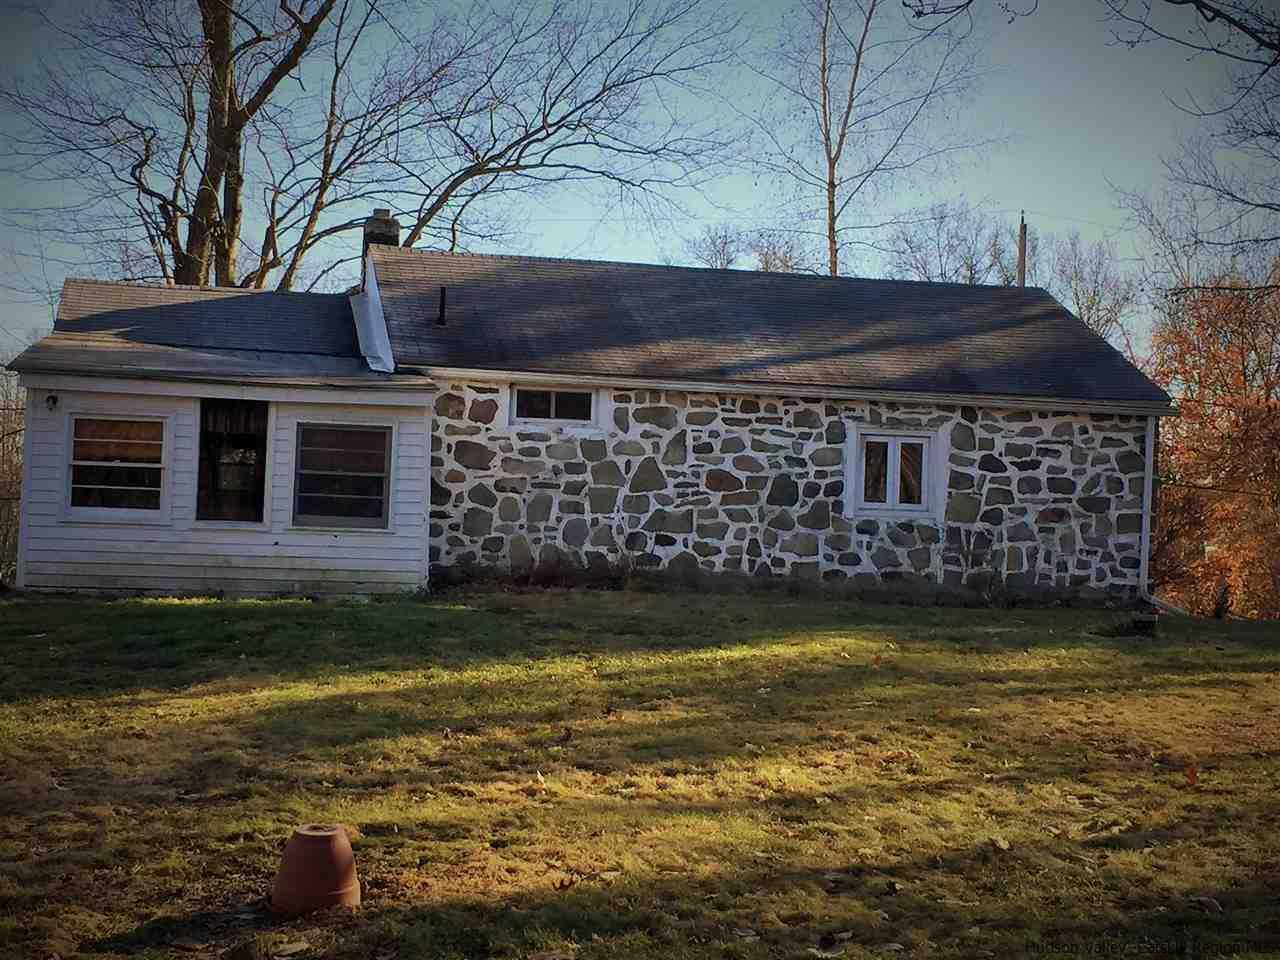 Single Family Home for Sale at 87 Church Street 87 Church Street Wallkill, New York 12589 United States